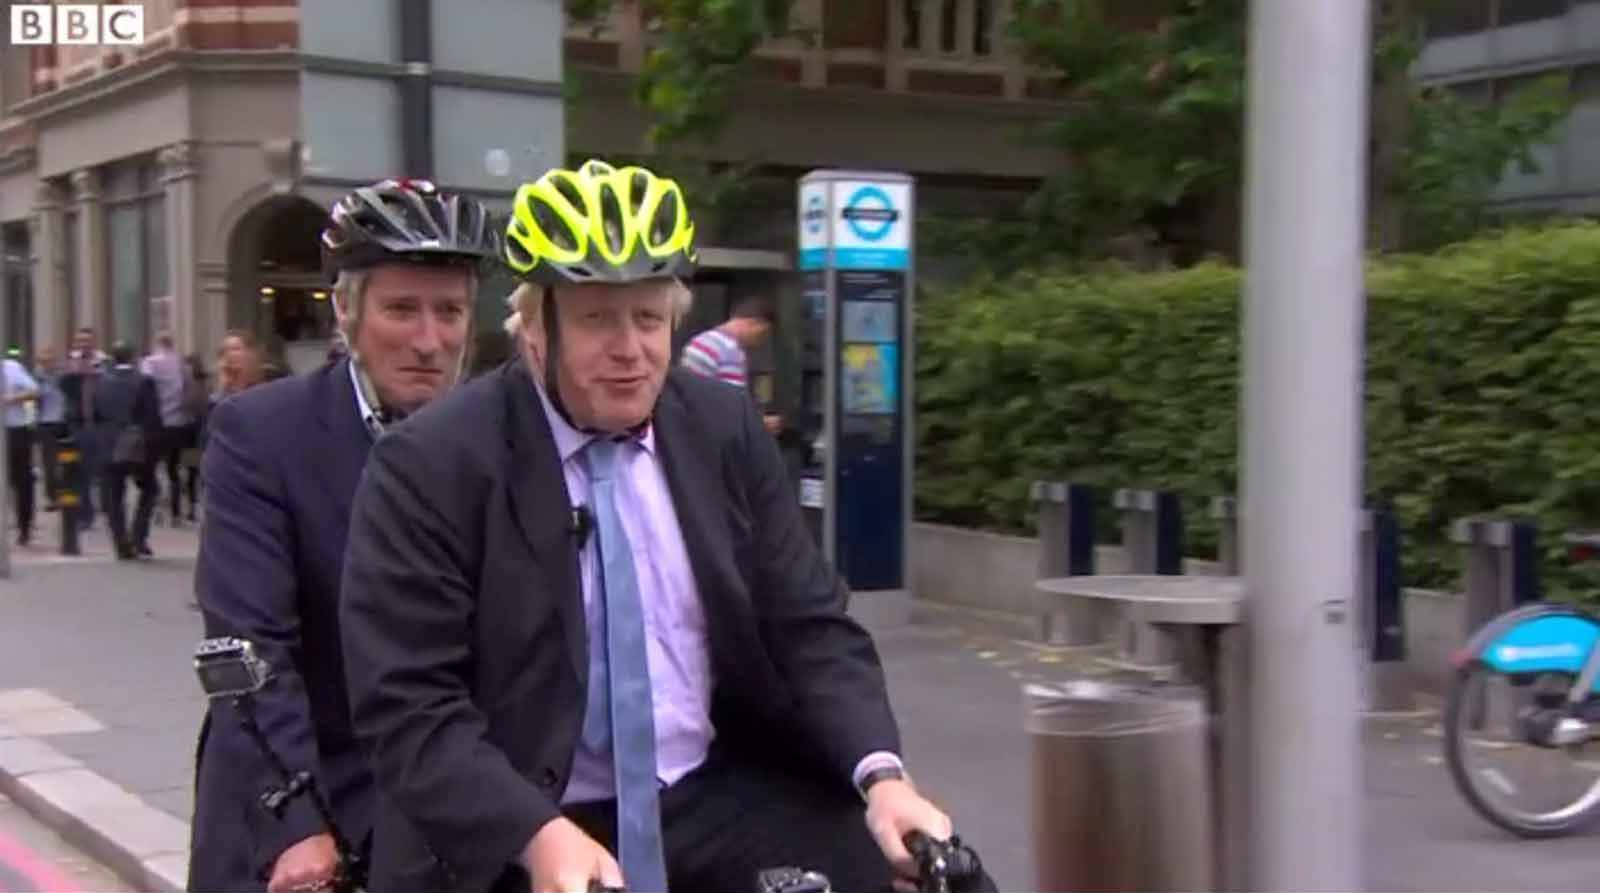 Boris Johnson takes Jeremy Paxman for a ride on the journalist's final Newsnight